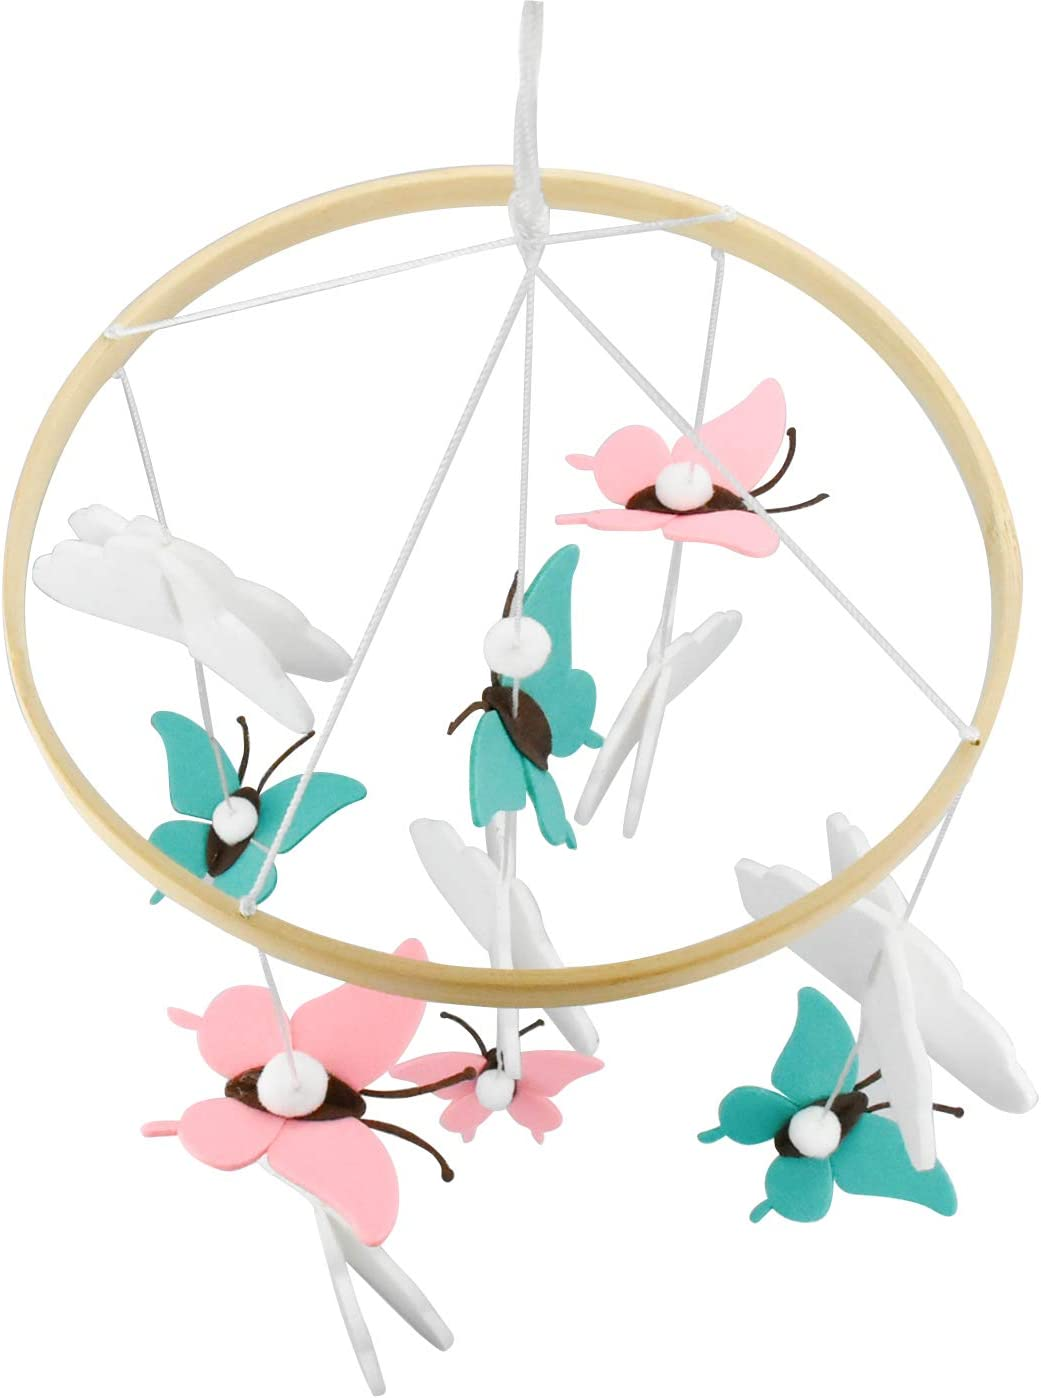 Small Foot Animal Mobile Hanging Cloud Butterfly Decoration Nursery Ceiling Mobile Baby Cot Felt Ball Mobile Infant Crib Musical Mobile Baby Wind Chimes